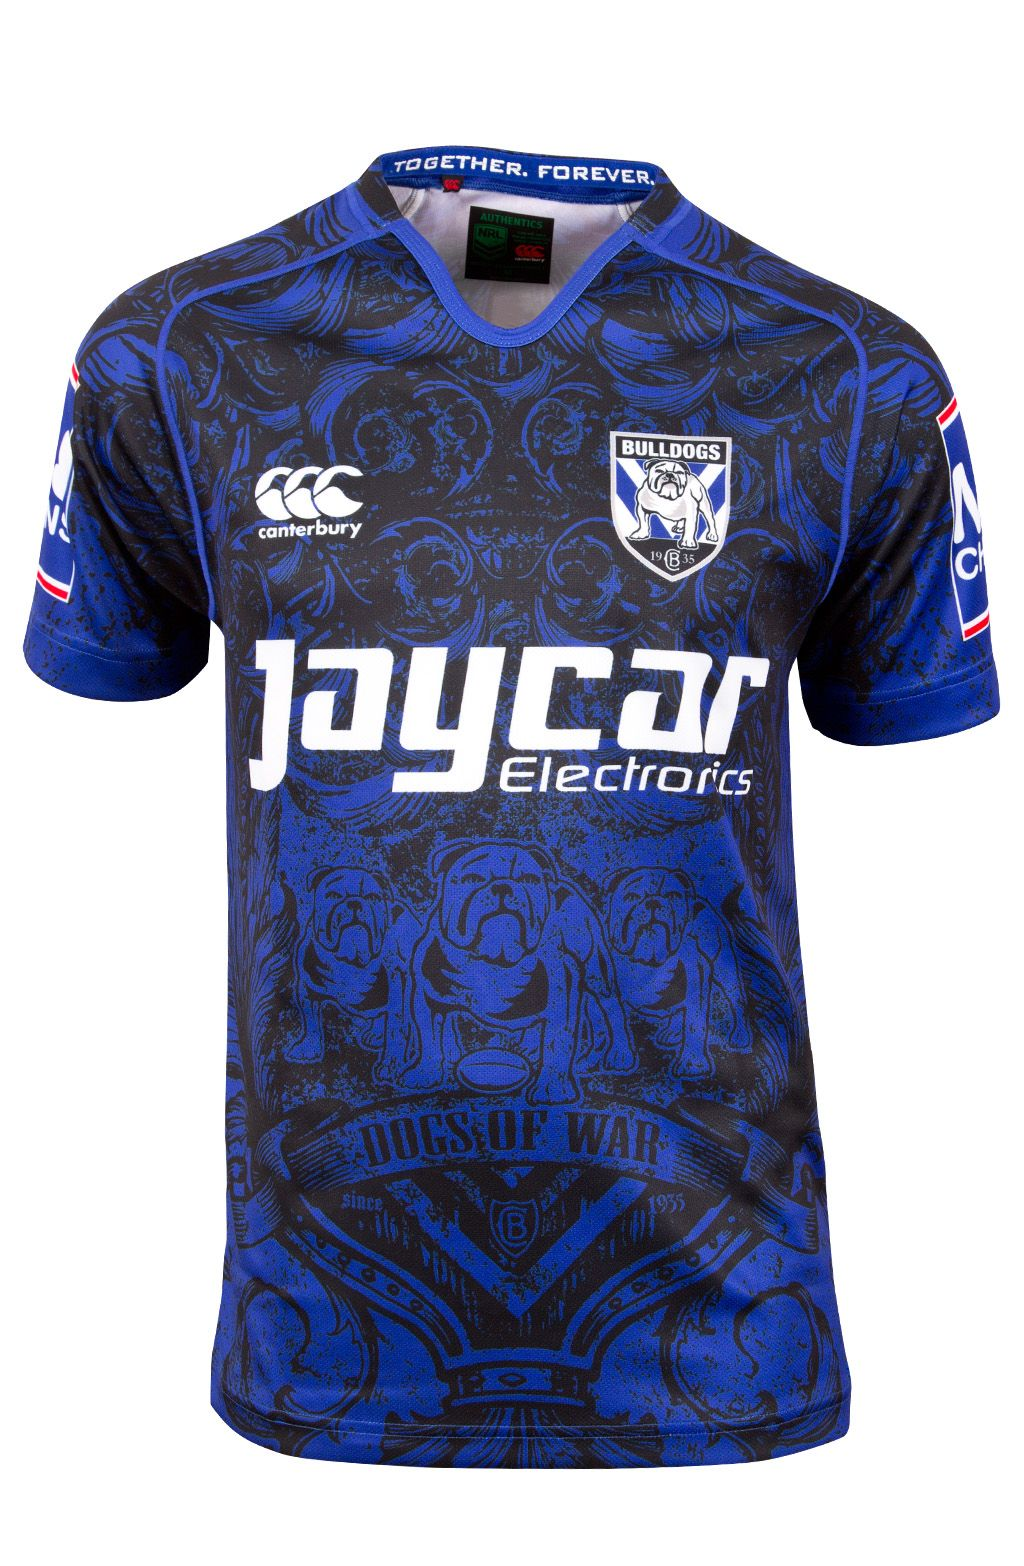 4c24d5280e4cc Australia's Best Sports Lifestyle Clothing and Accessories - Canterbury NZ  - Shop - Supporters - Bulldogs 2014 Training Jersey